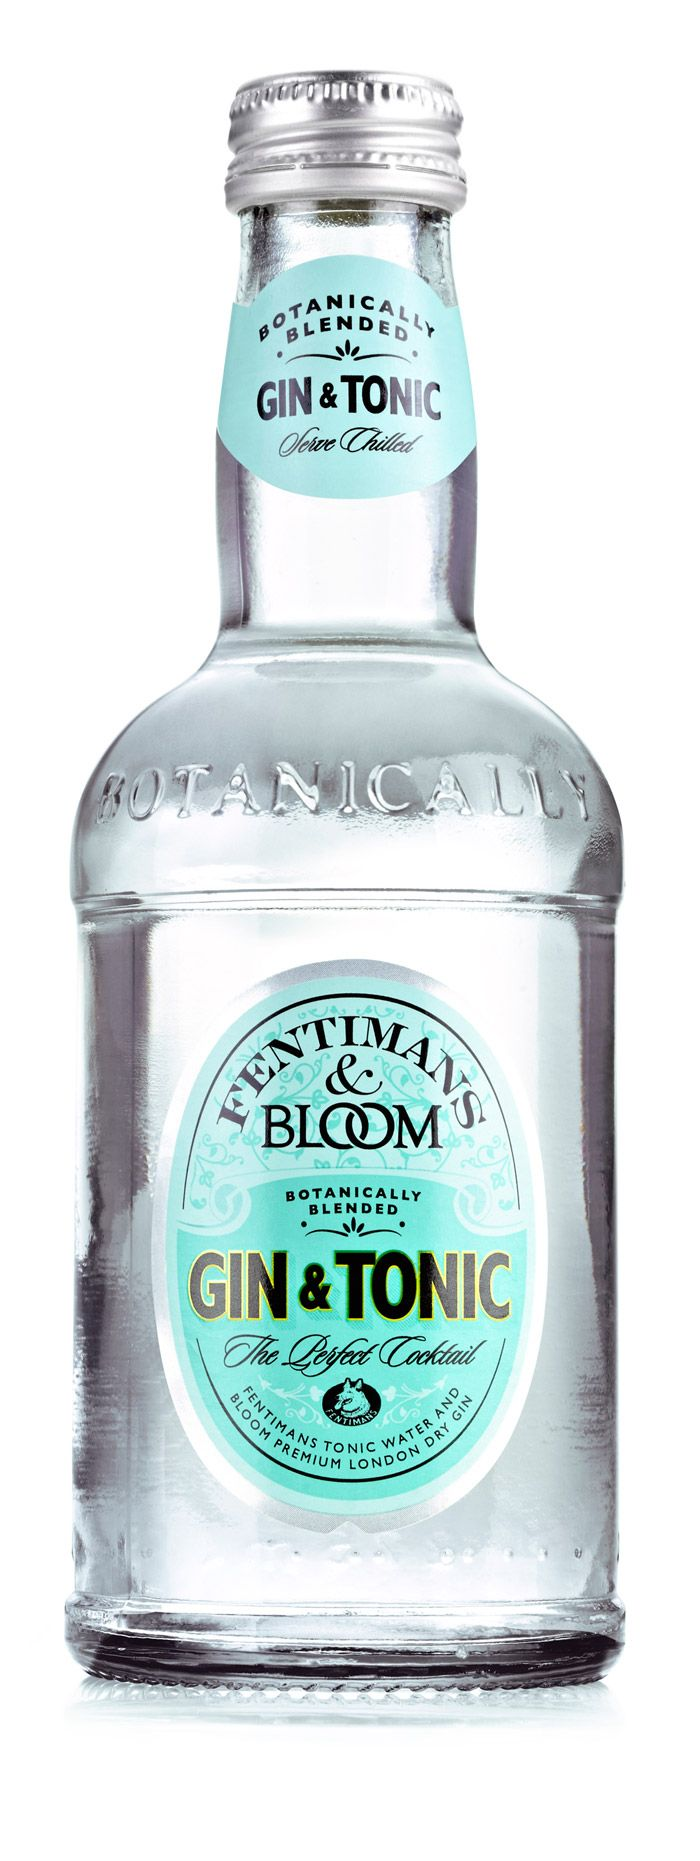 Fentiman's and Bloom Gin & Tonic